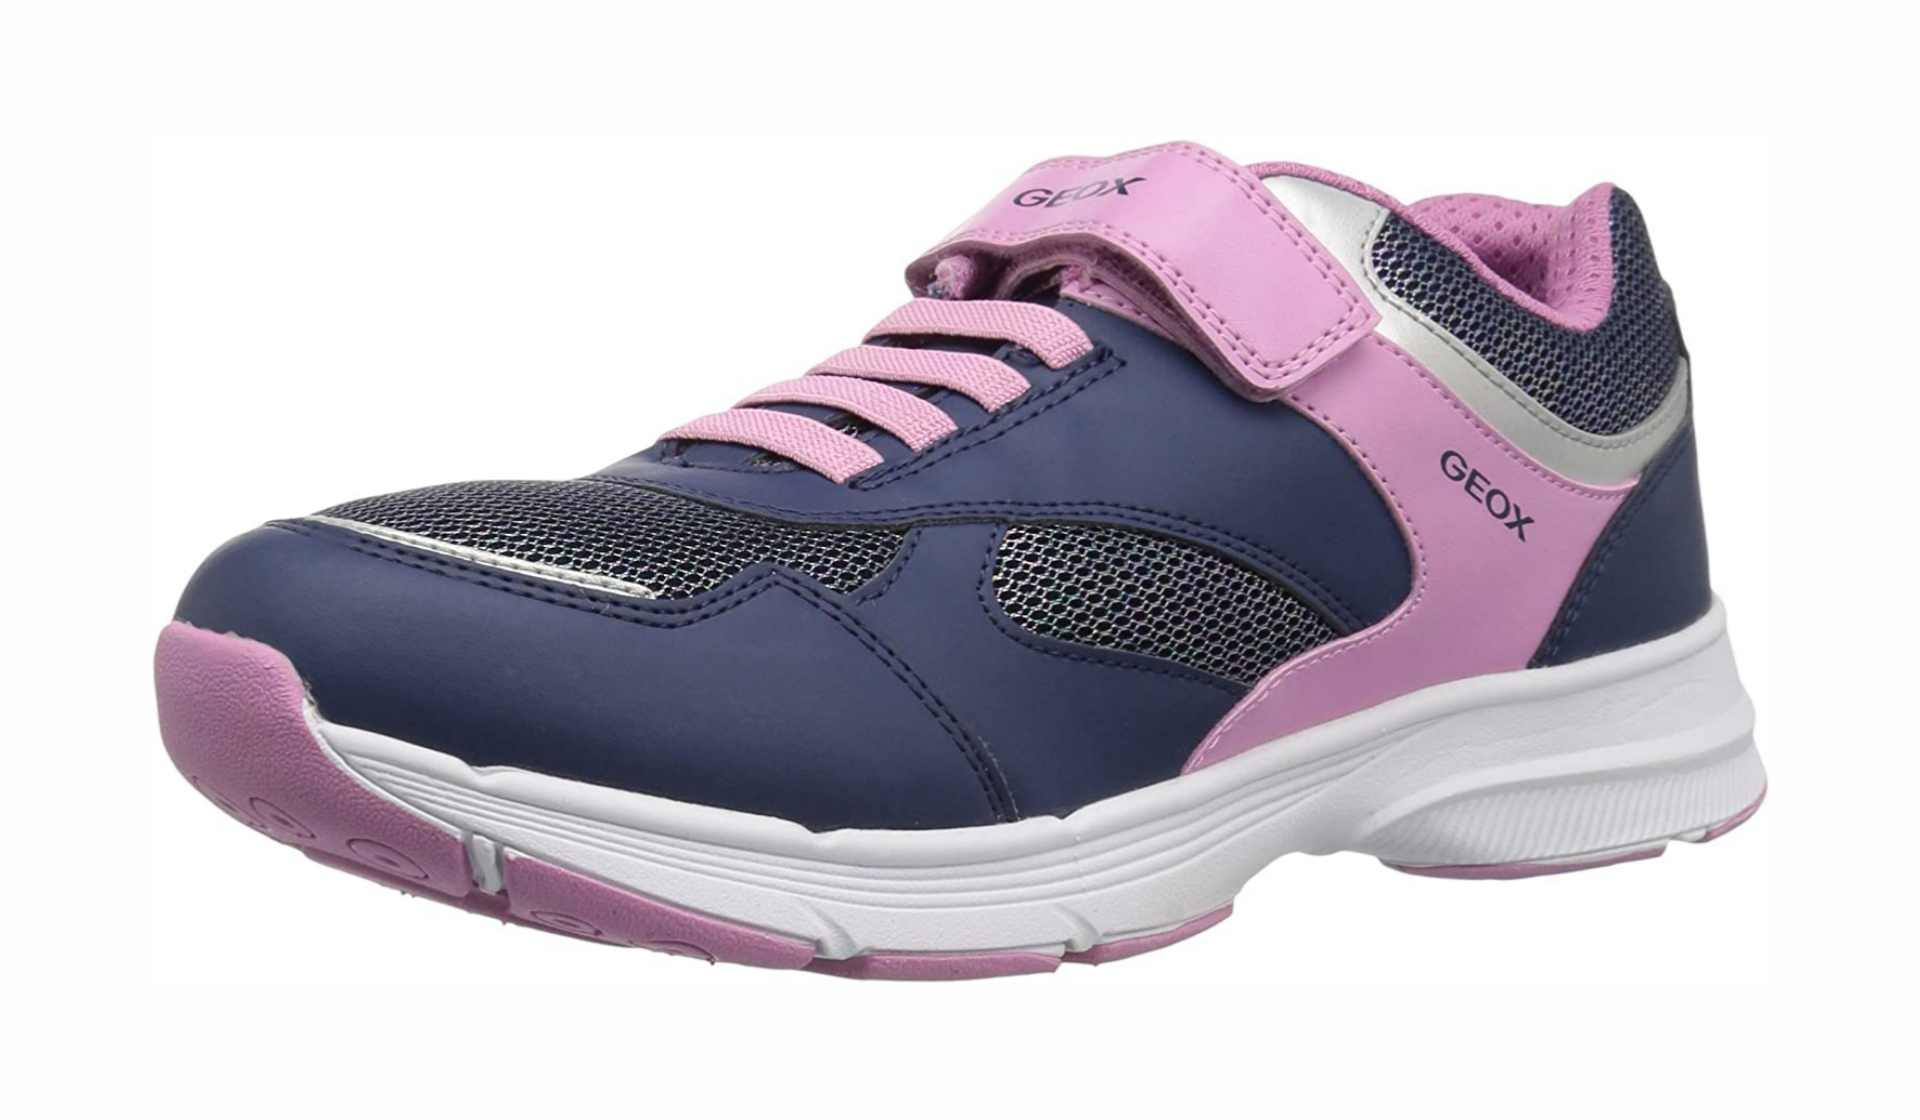 Shoes for kids with wide feet